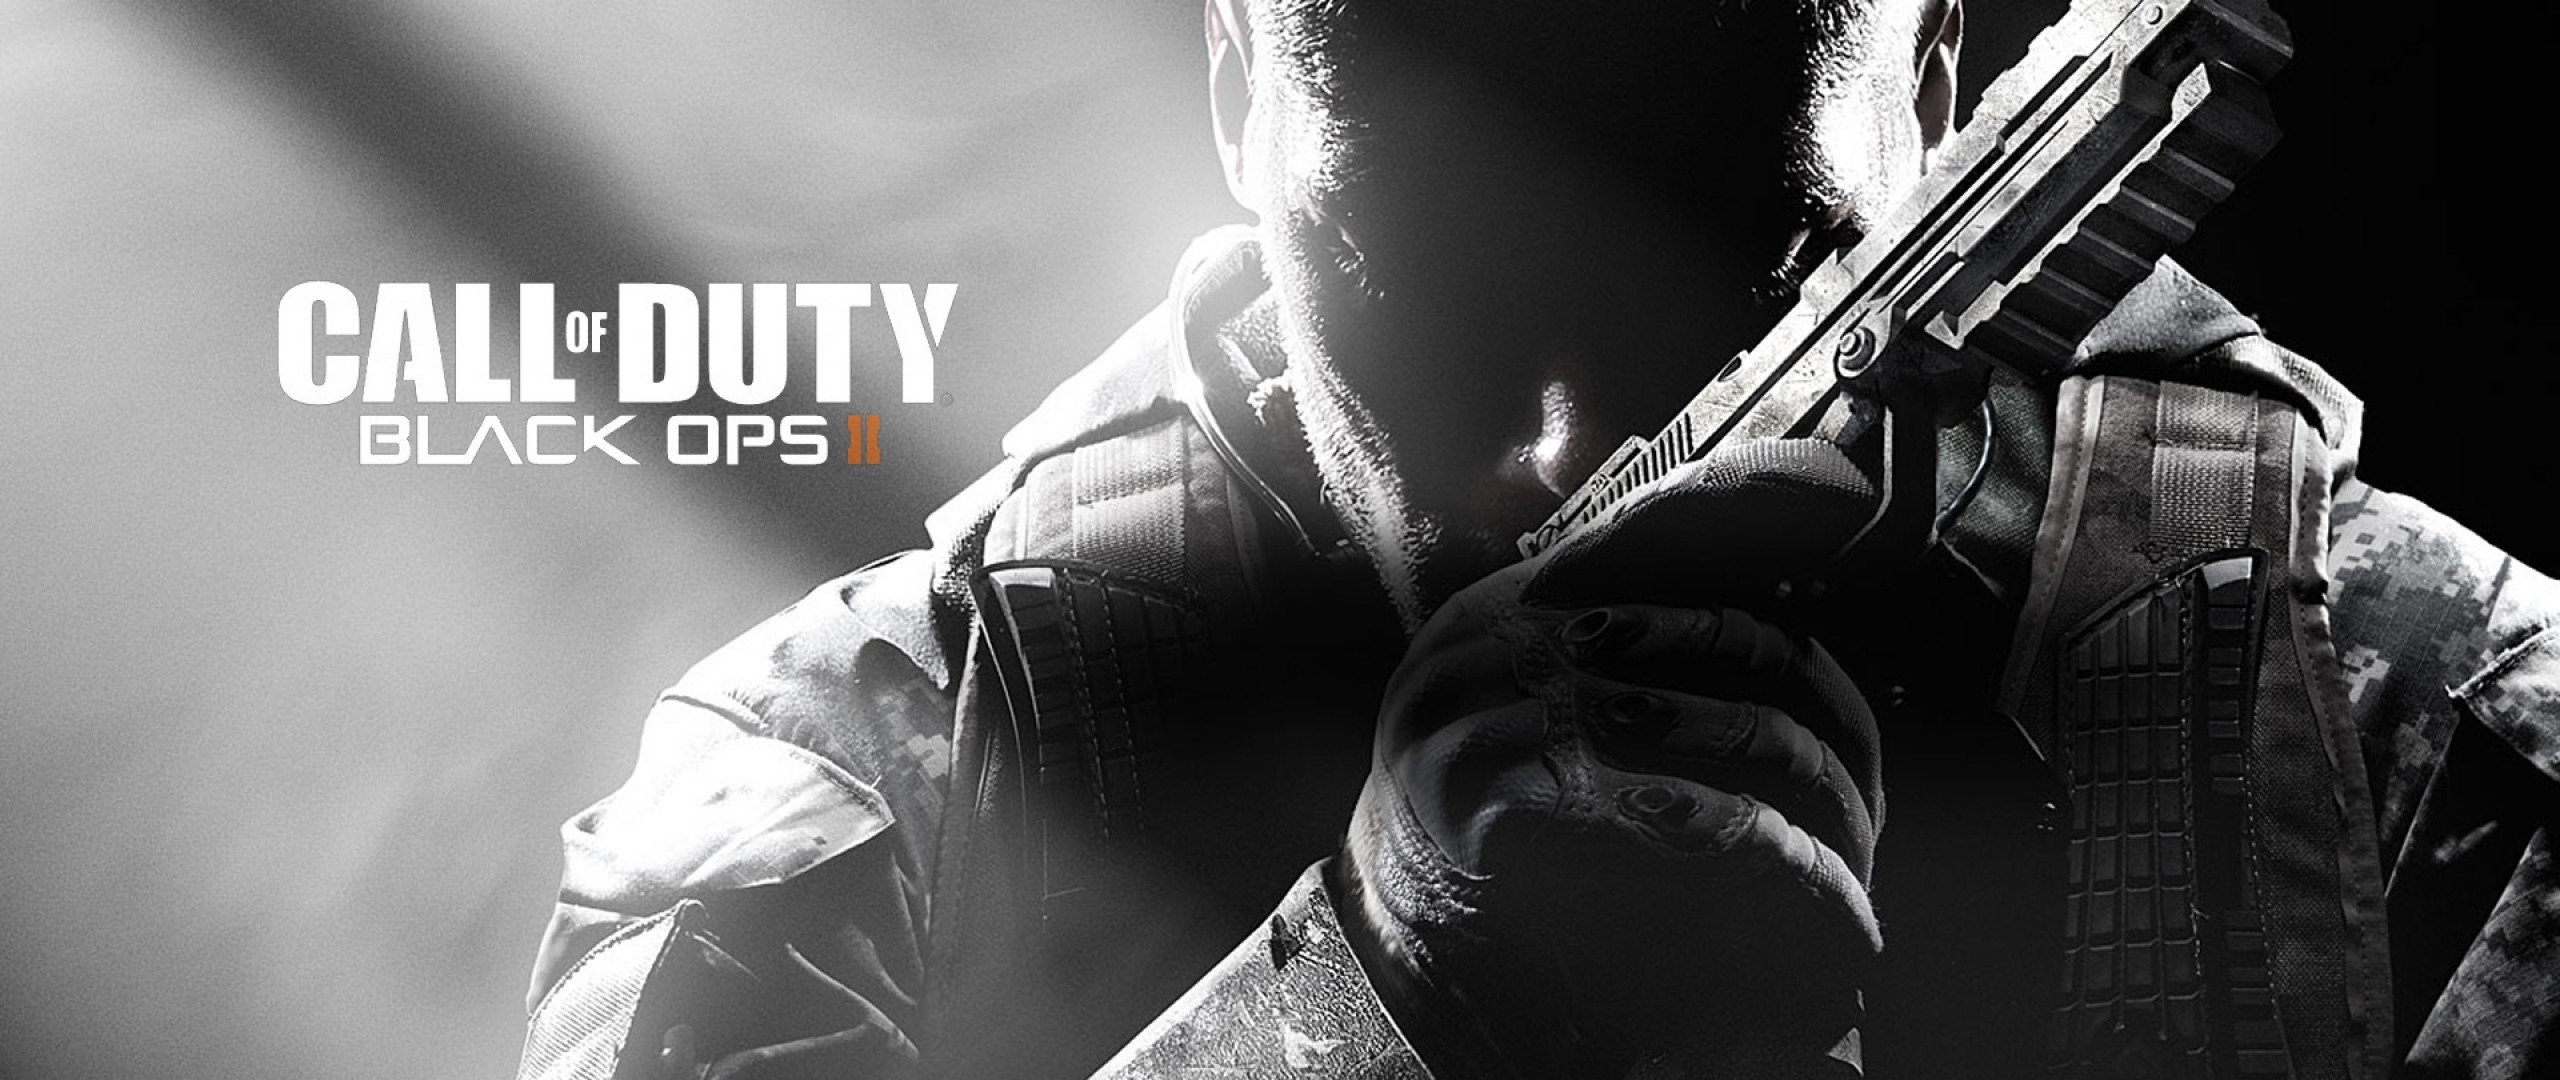 Preview wallpaper call of duty, black ops 2, soldiers, weapons, shooter  2560×1080